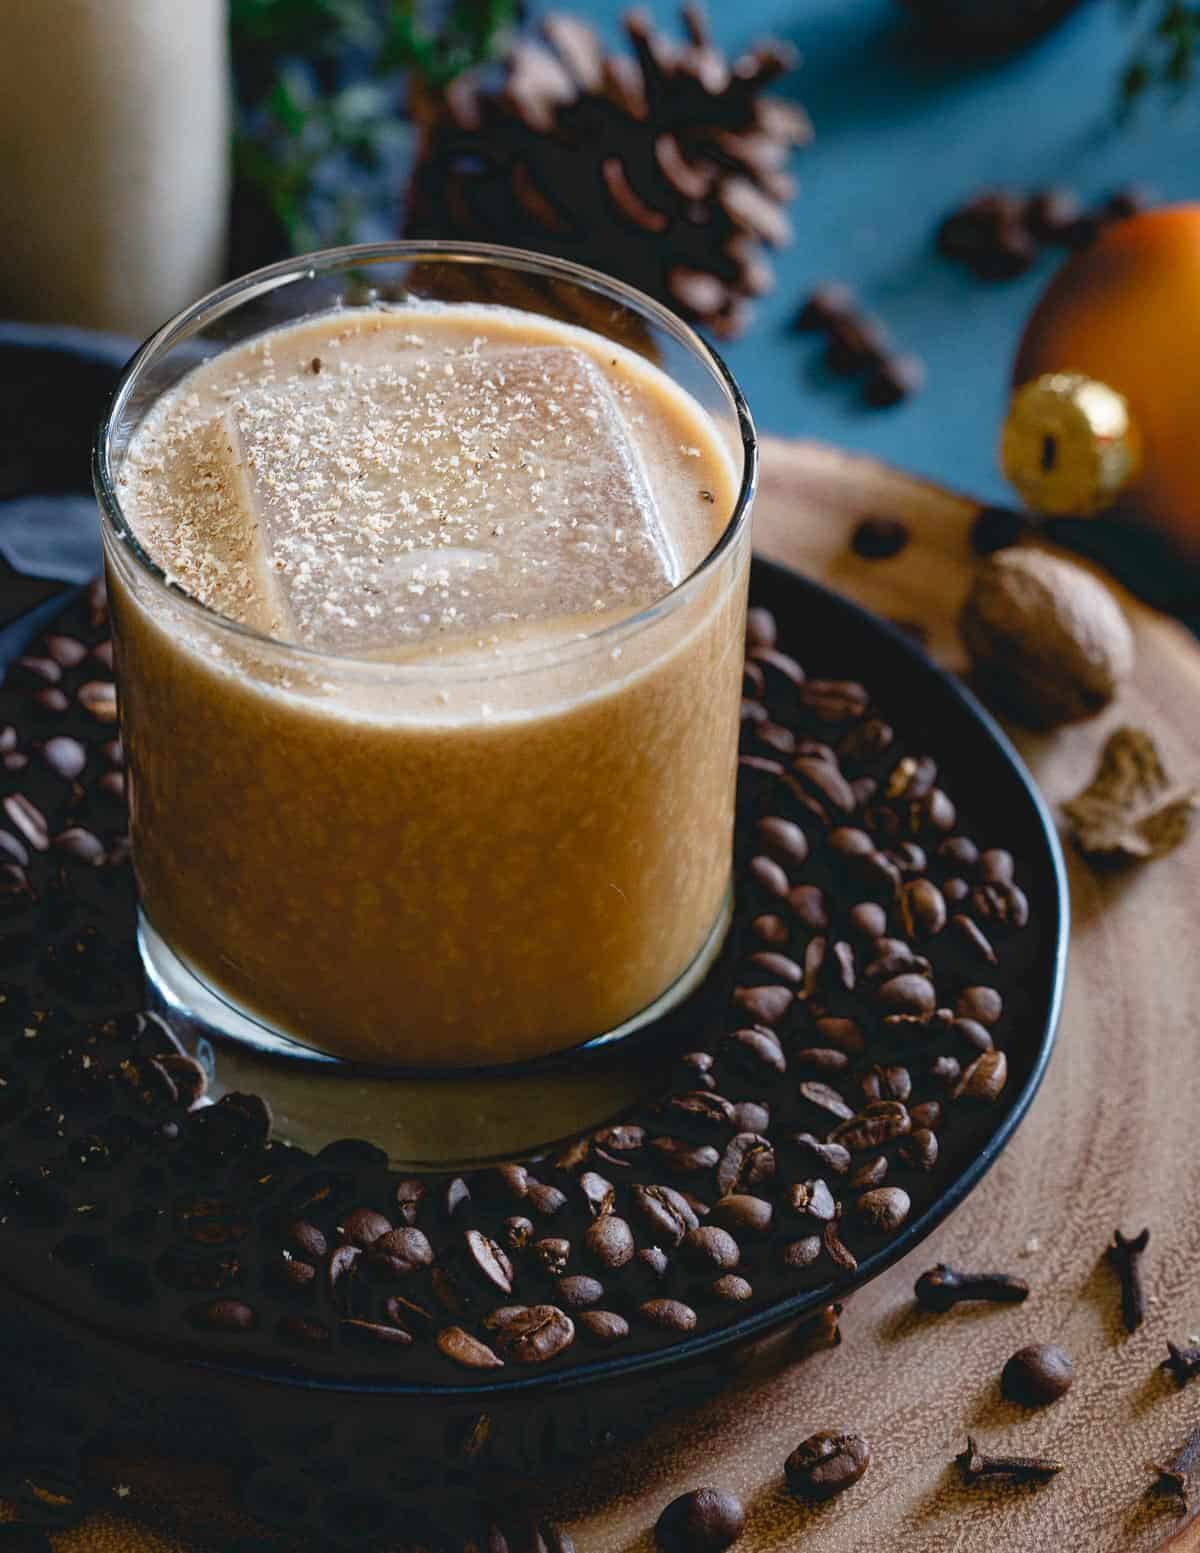 Your new winter-time drink, the coconut bourbon coffee nog! With both booze and caffeine, it can't be beat!